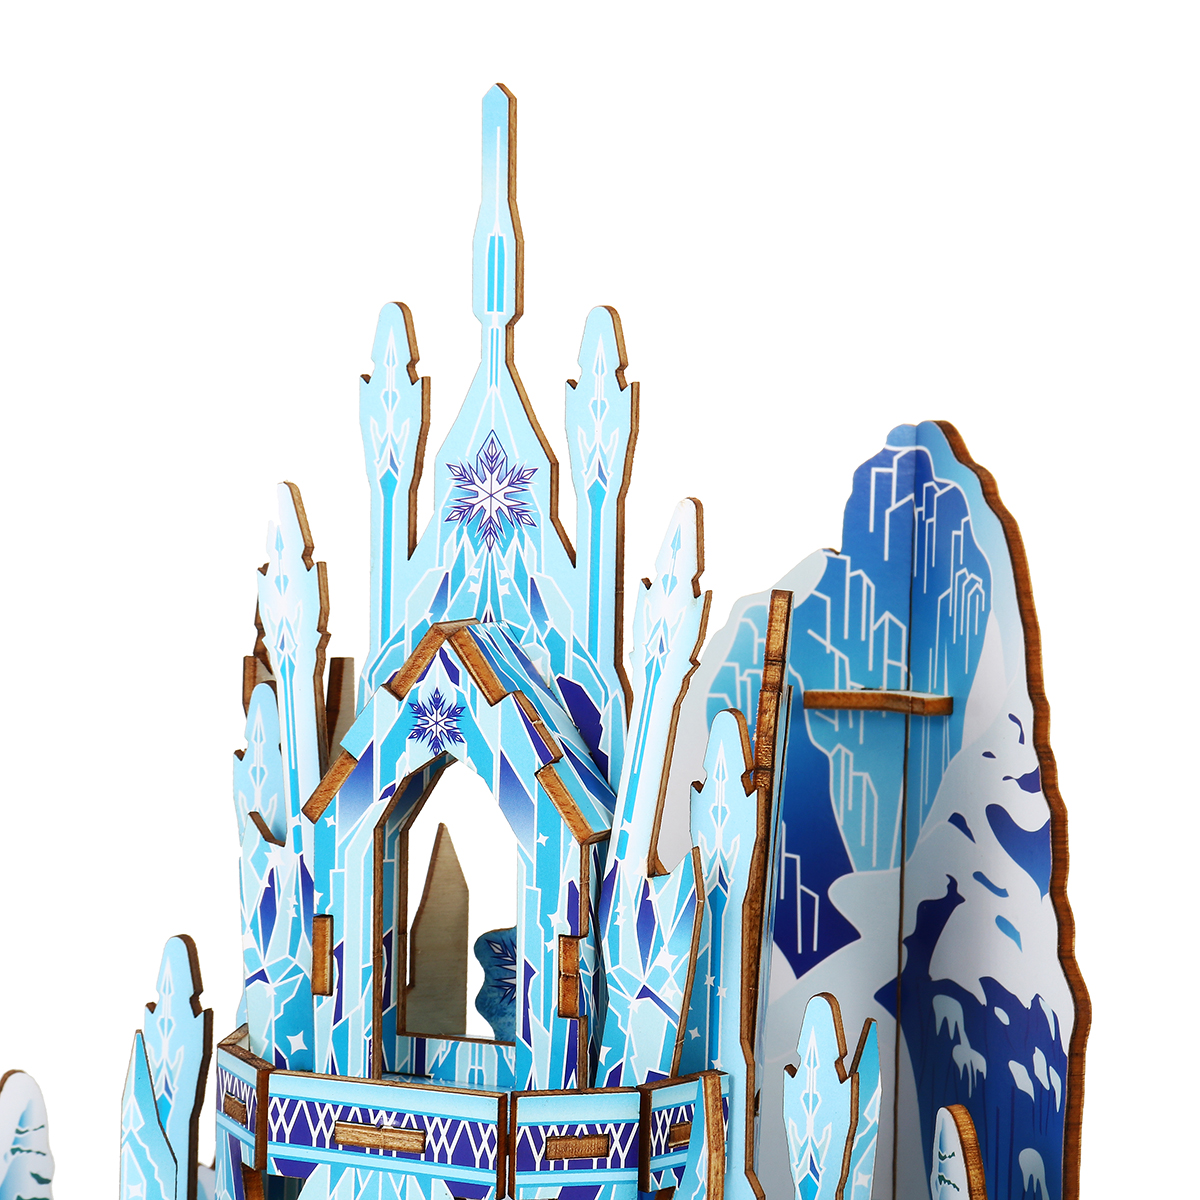 Wooden Ice Castle 3D DIY House Kit Puzzle Toys 3D Jigsaw Puzzle Assembly Model Educational Toy Christmas Birthday Gift For Kids